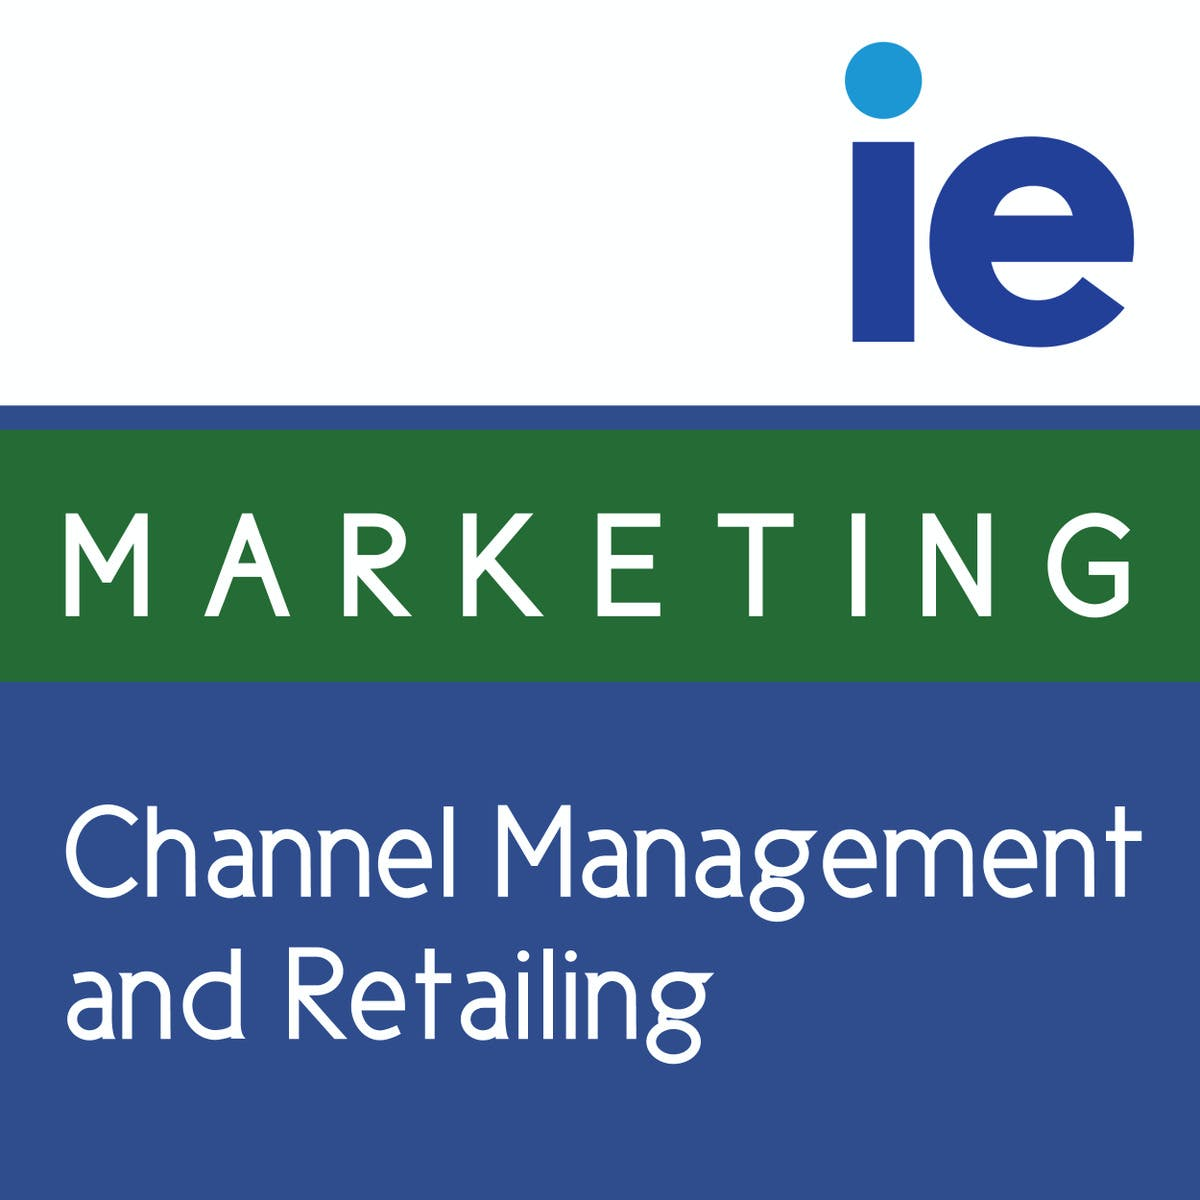 Channel Management and Retailing